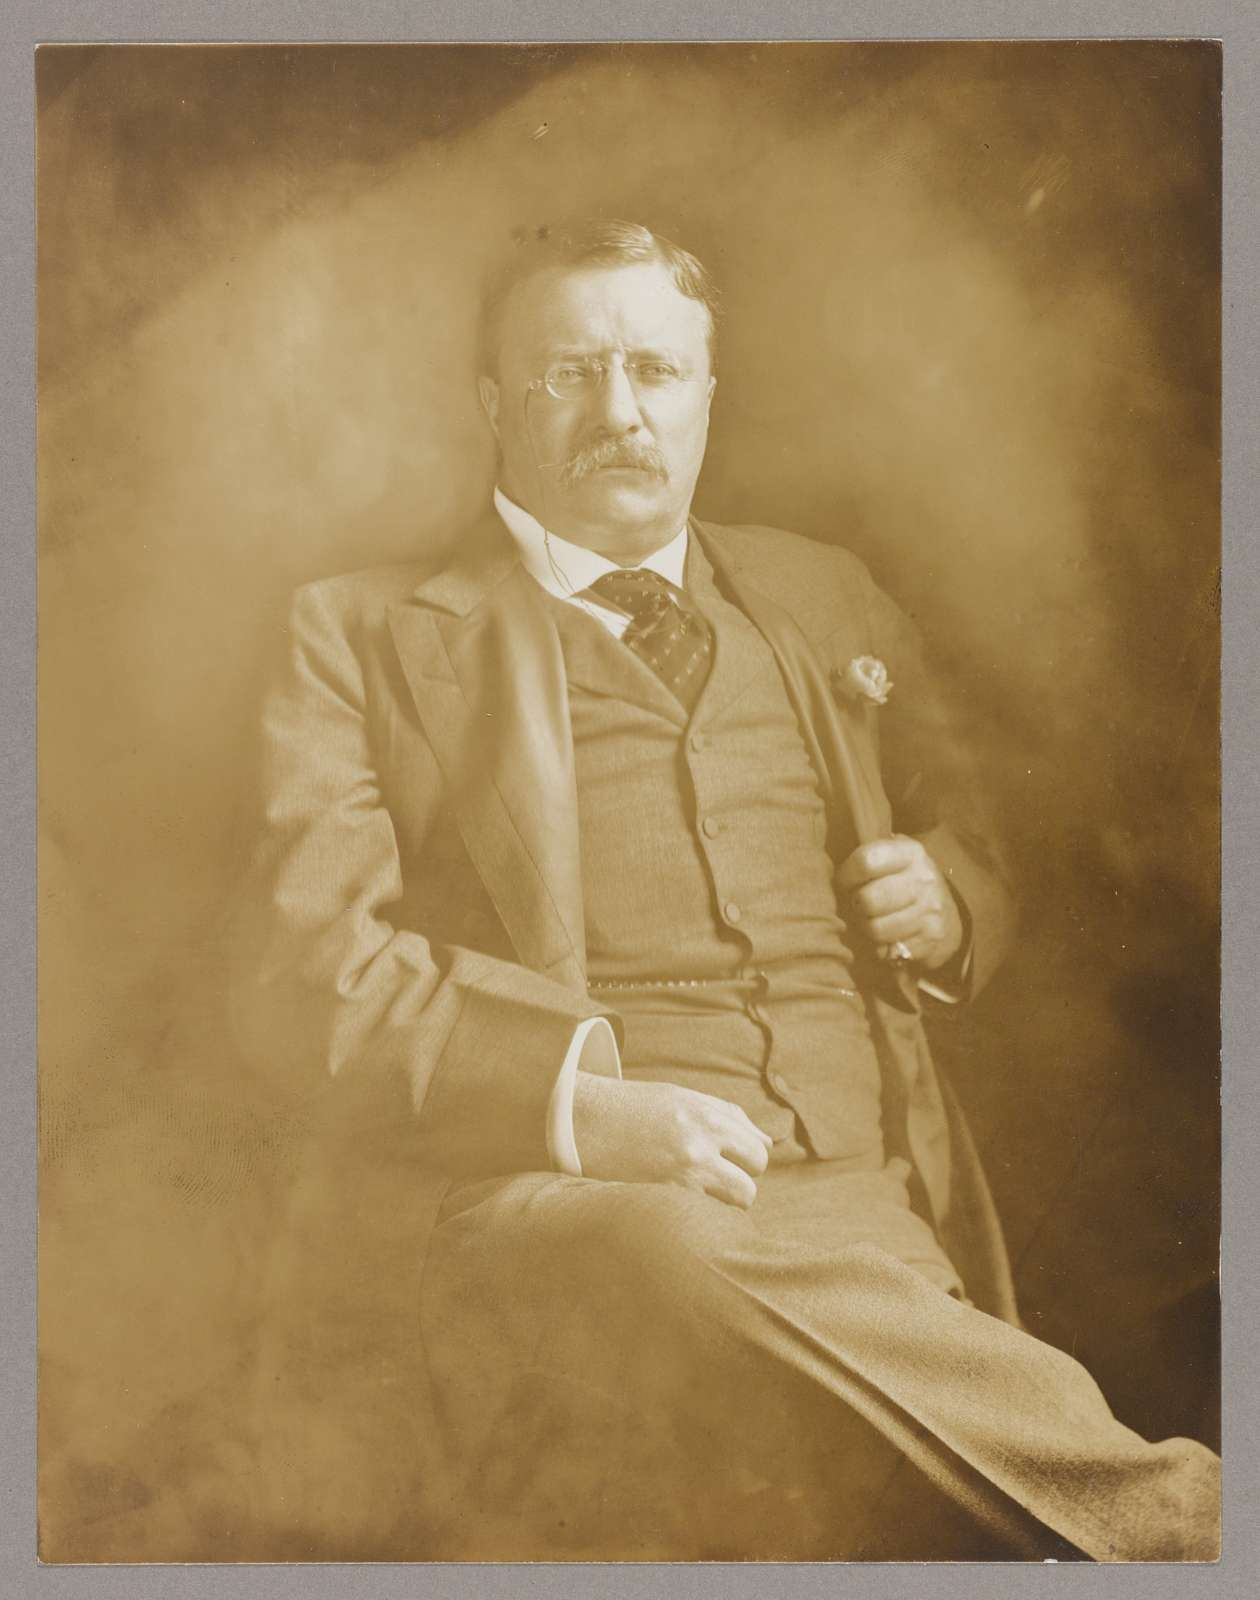 [PresidentTheodore Roosevelt, three-quarter length portrait, seated, facing front, hand gripping jacket lapel]